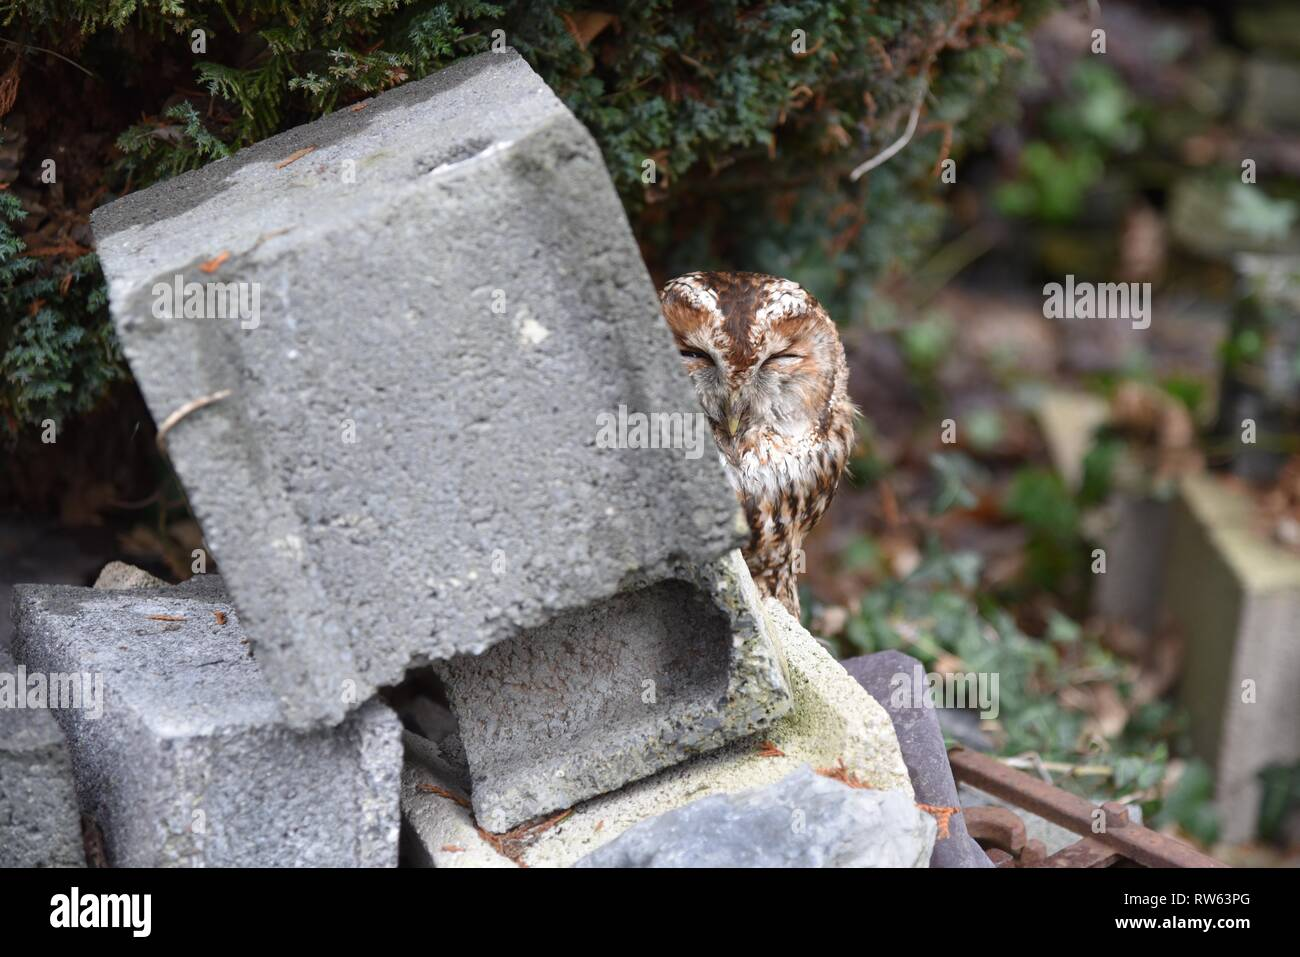 Tawny Owl, or Brown Owl (Strix aluco): an individual bird found at ground level with a broken wing Stock Photo